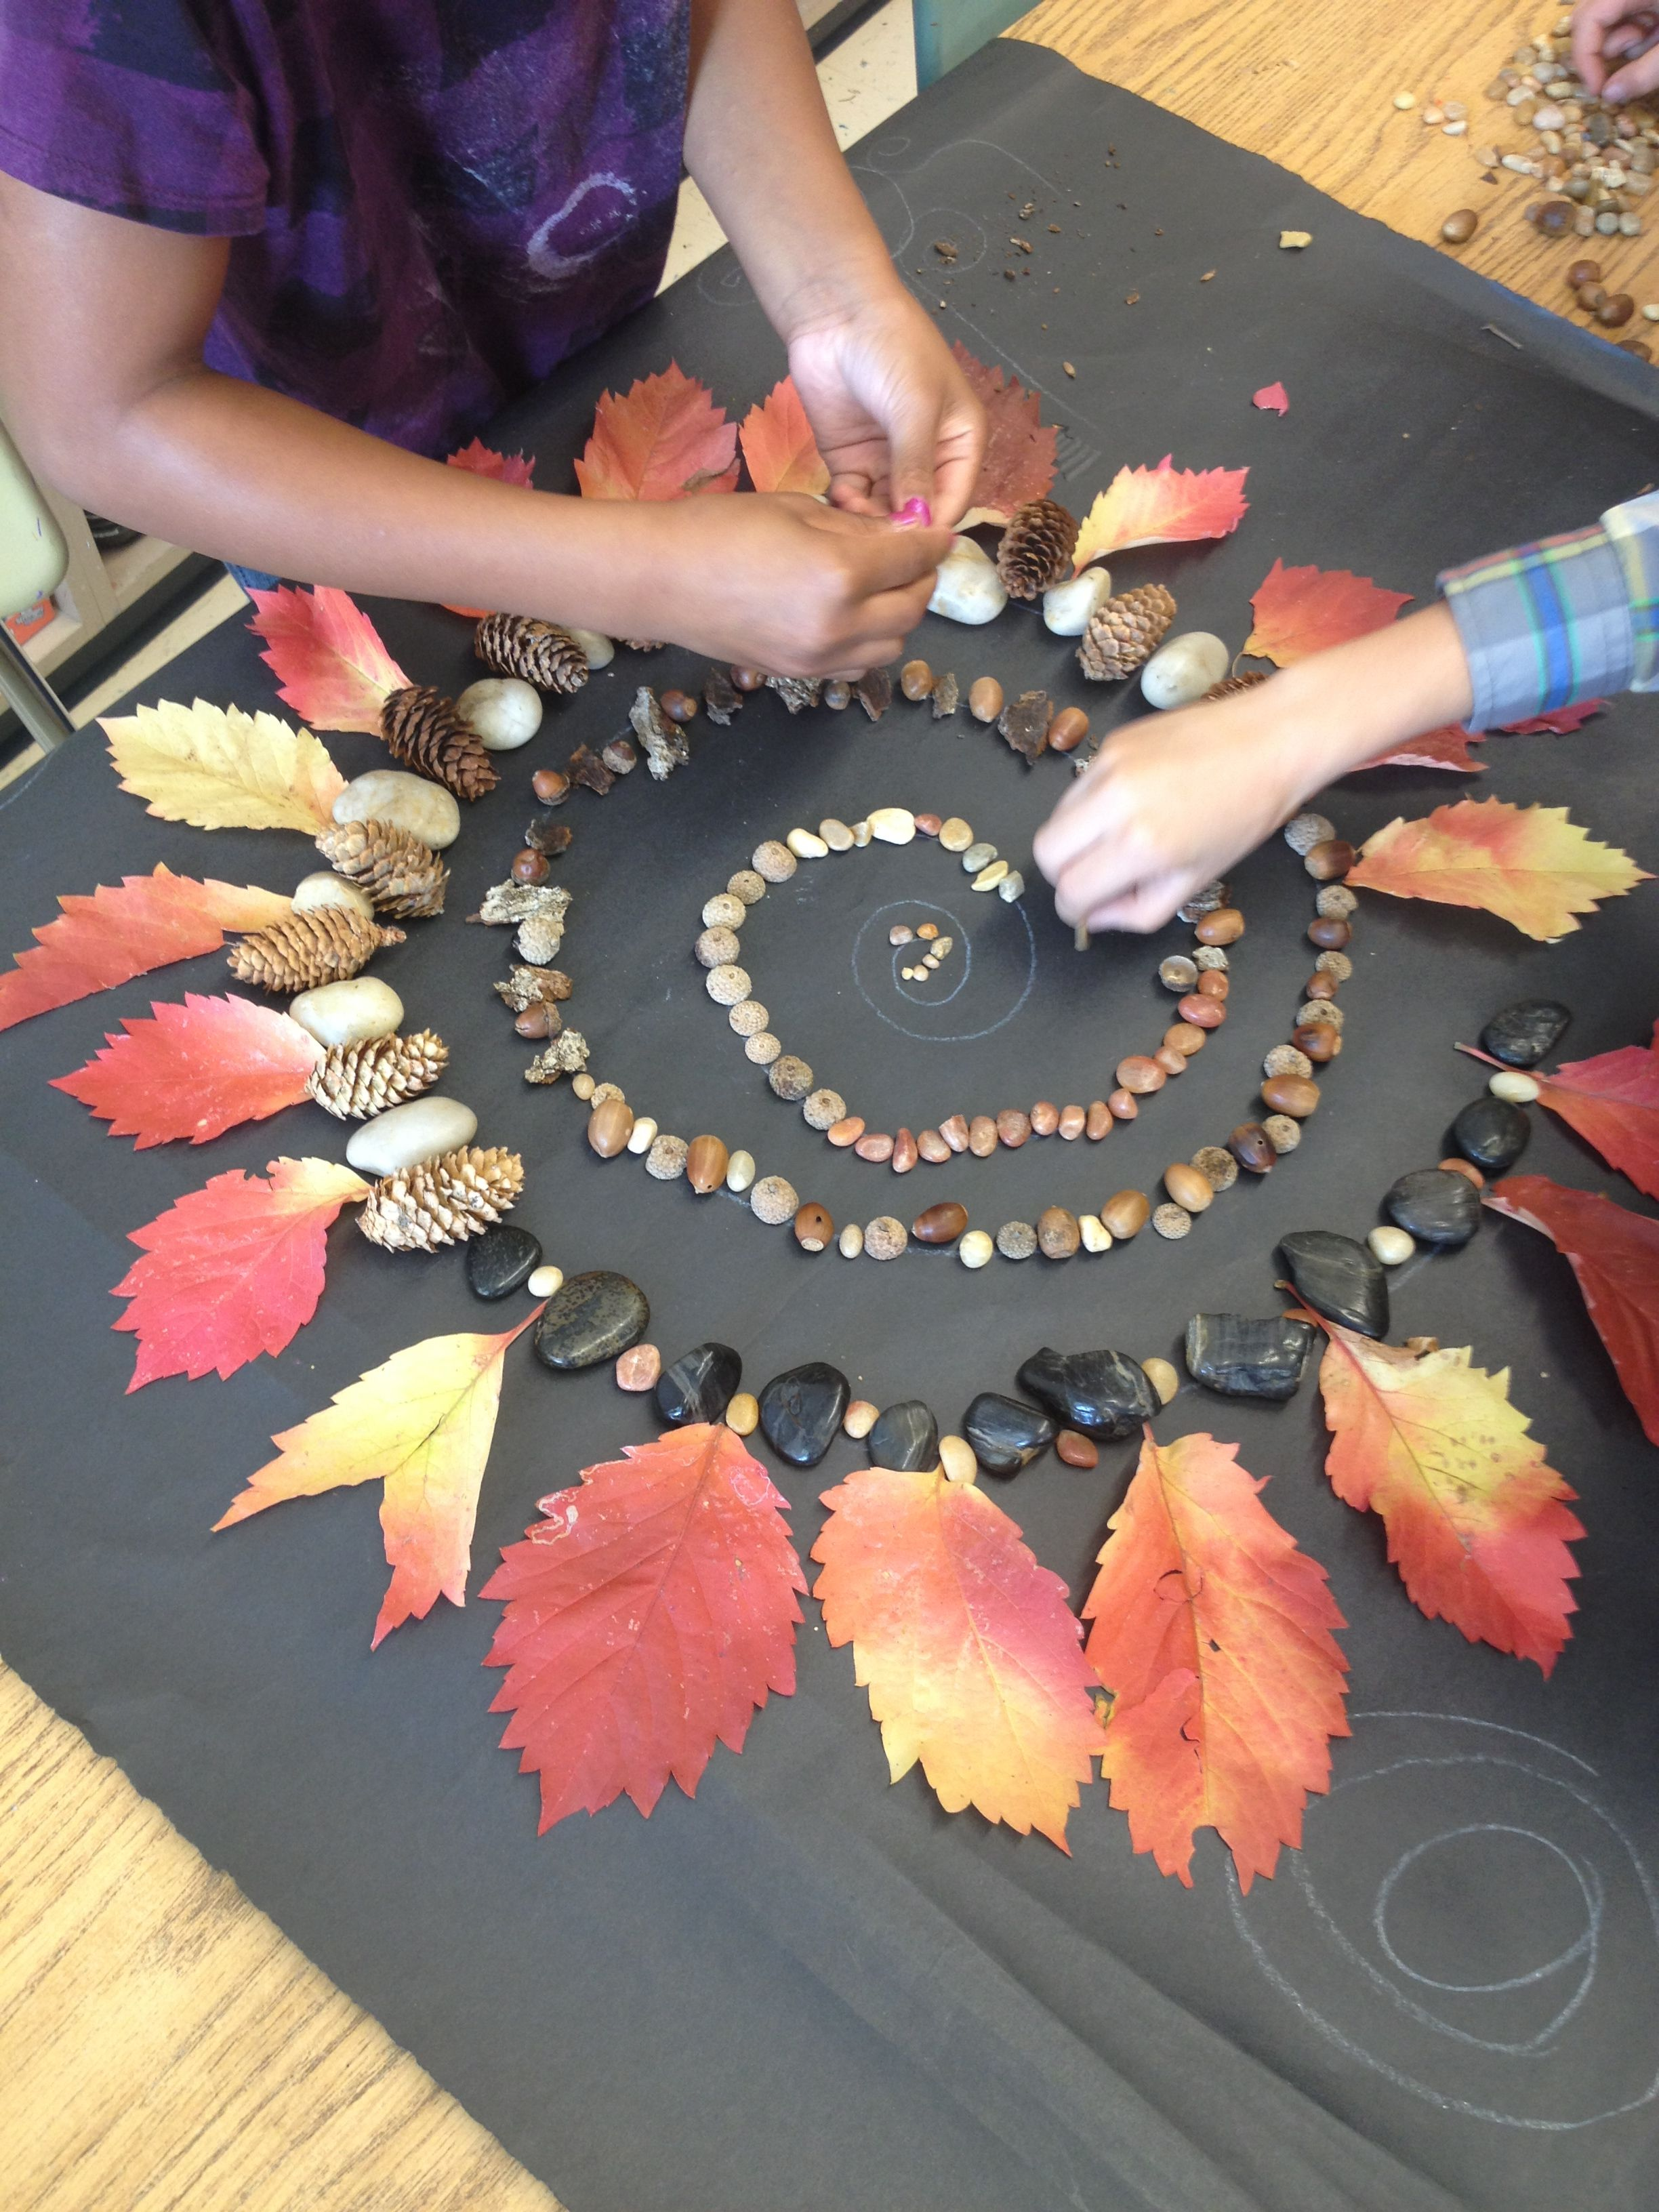 Exploring Spirals in Nature, and Andy Goldsworthy's Nature art ...